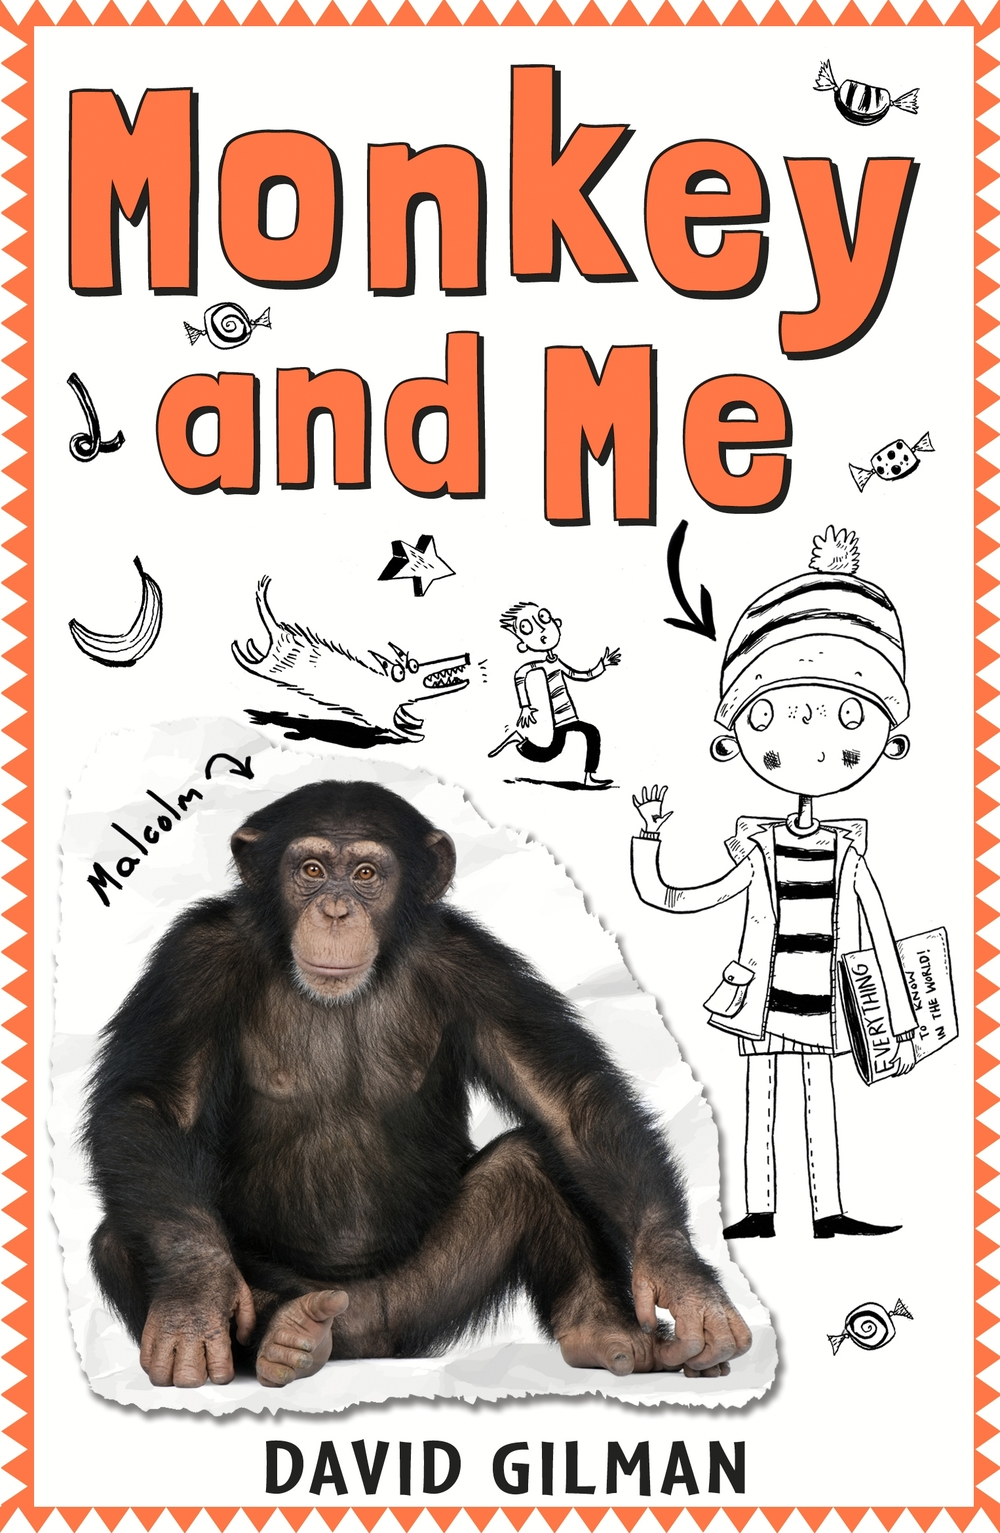 MONKEY & ME  9-11, Contemporary, 240 pages Templar Feb 2014.  Nominated for the CILIP Carnegie Award 2014  One brave boy, one escaped chimpanzee, one adventure of a lifetime… A heartwarming story packed with guts and humour.